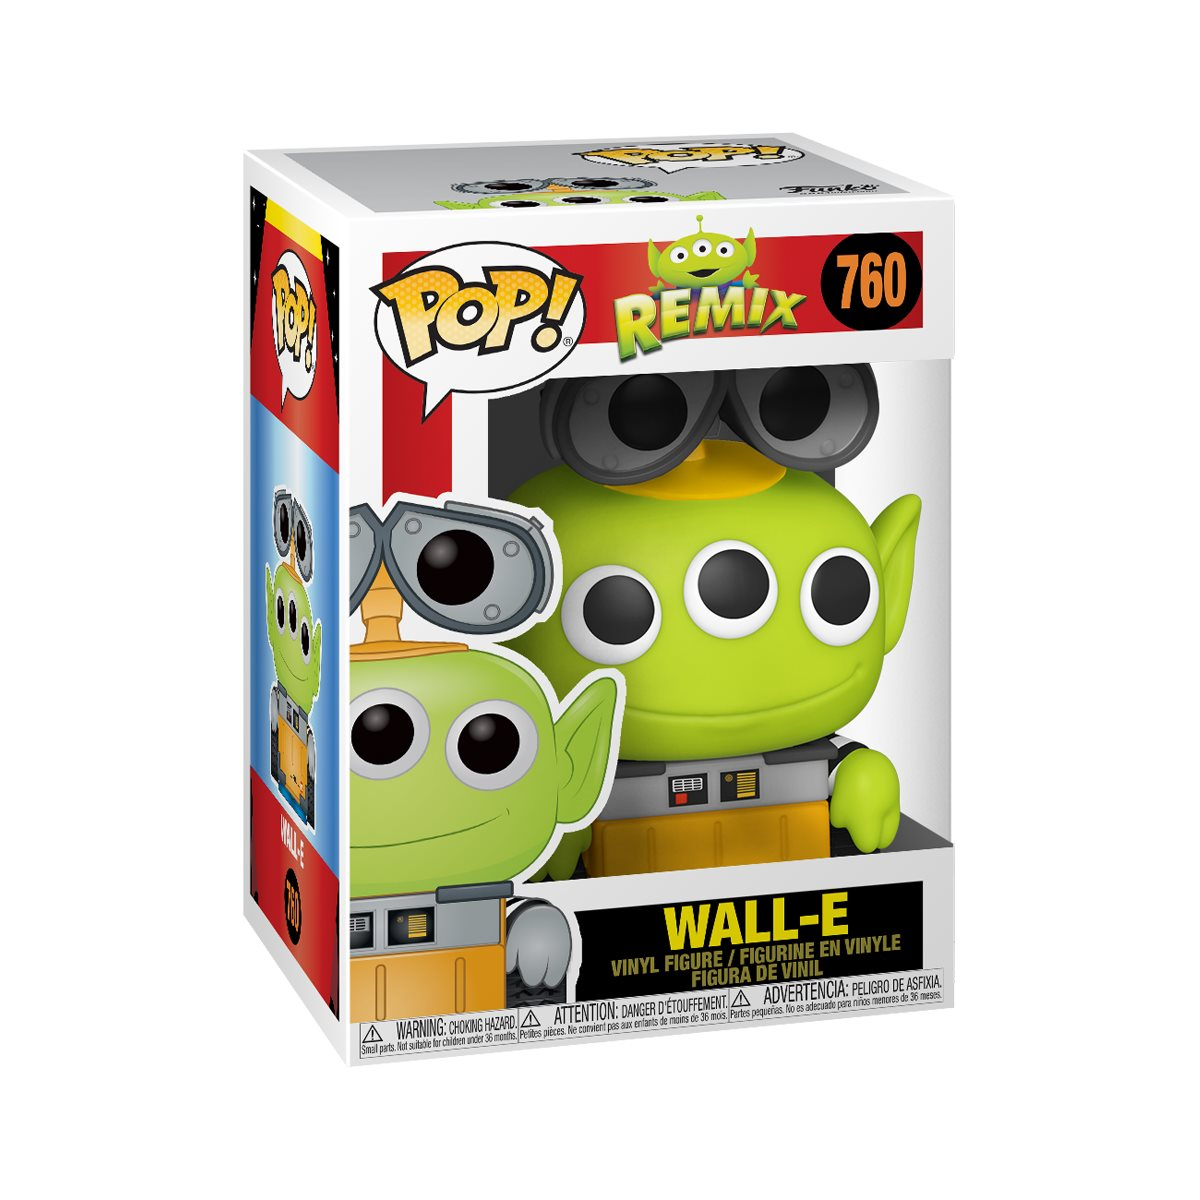 Pixar 25th Anniversary Alien as Wall-E